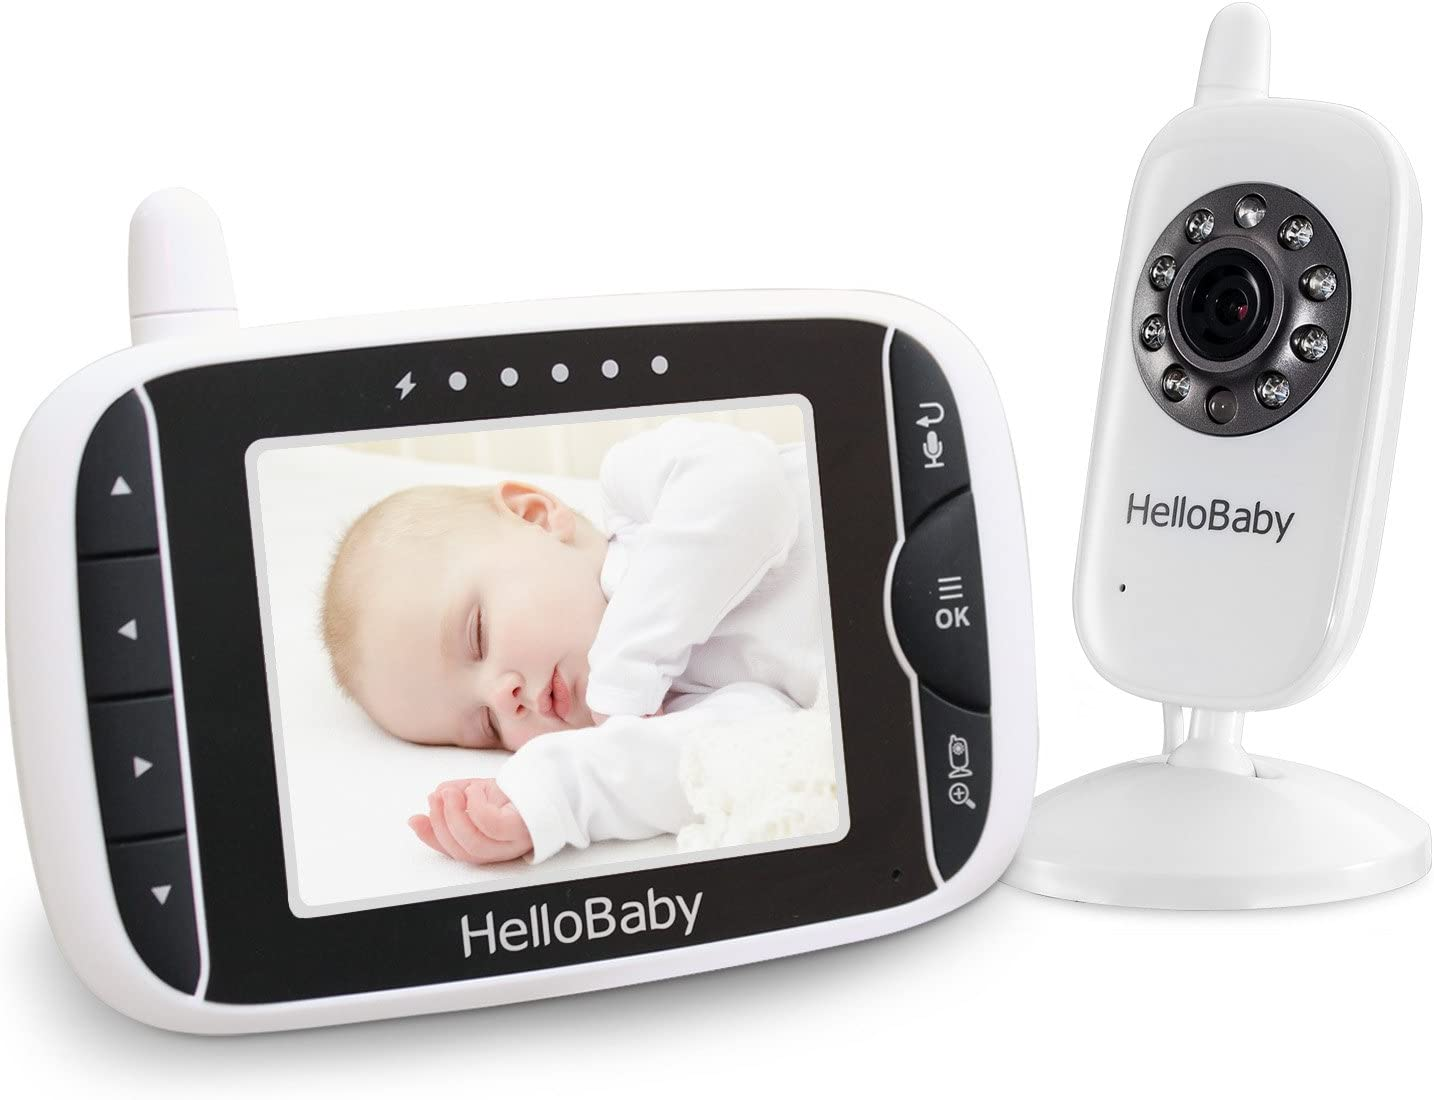 HelloBaby Video Baby Monitor Review